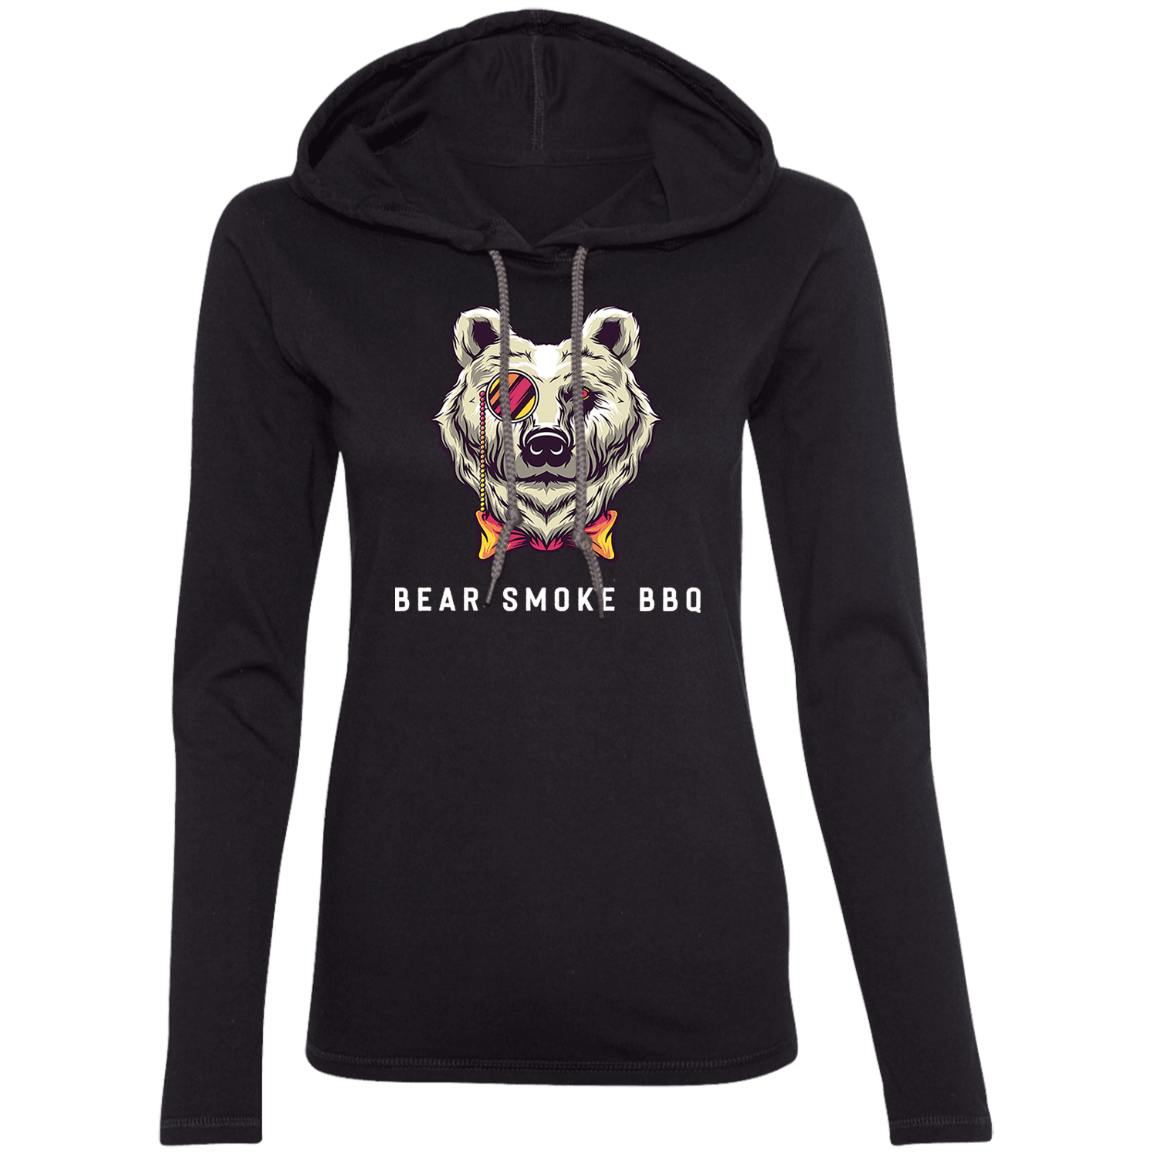 Bear Smoke Ladies' LS T-Shirt Hoodie - Bear Smoke BBQ